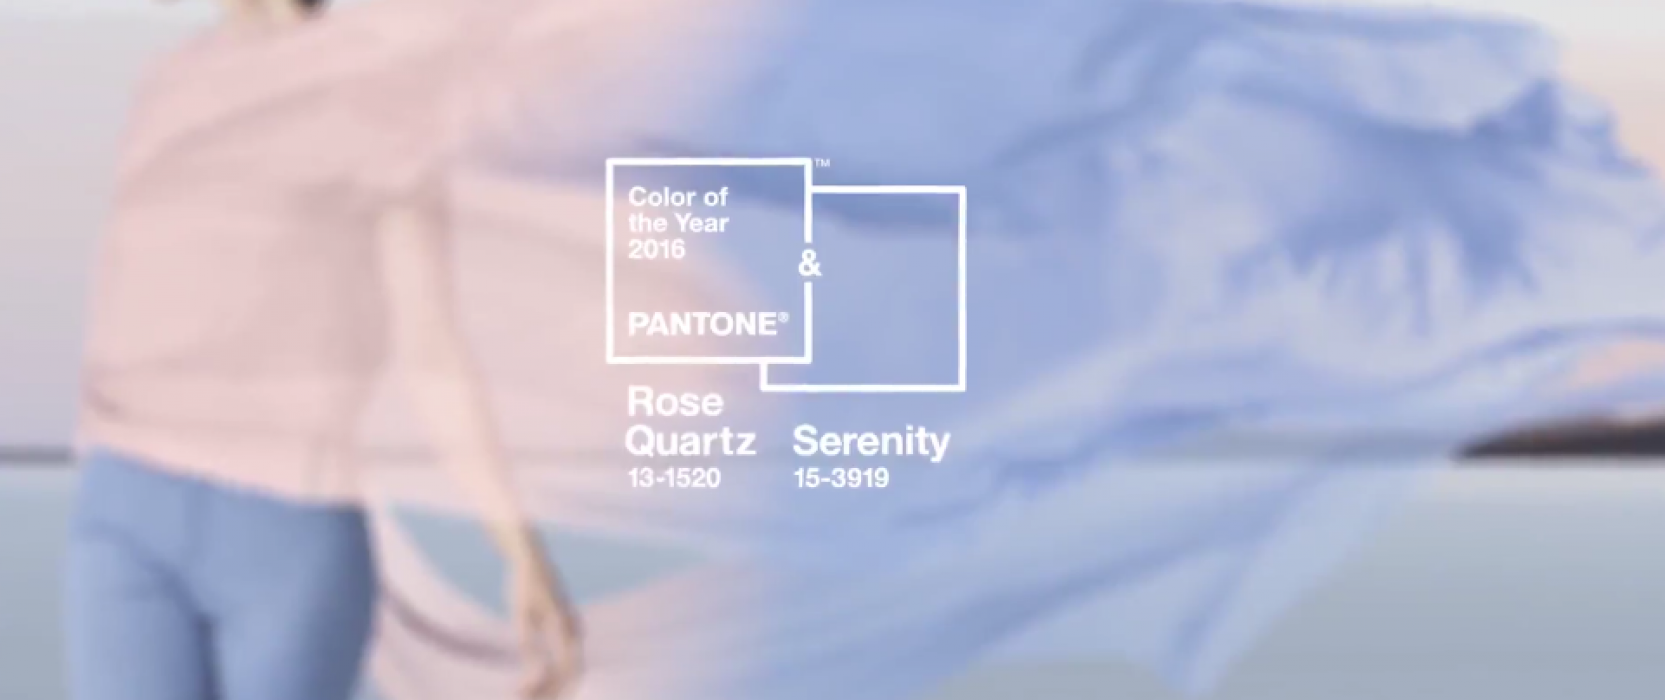 Pantone Color of the Year 2016: Rose Quartz & Serenity